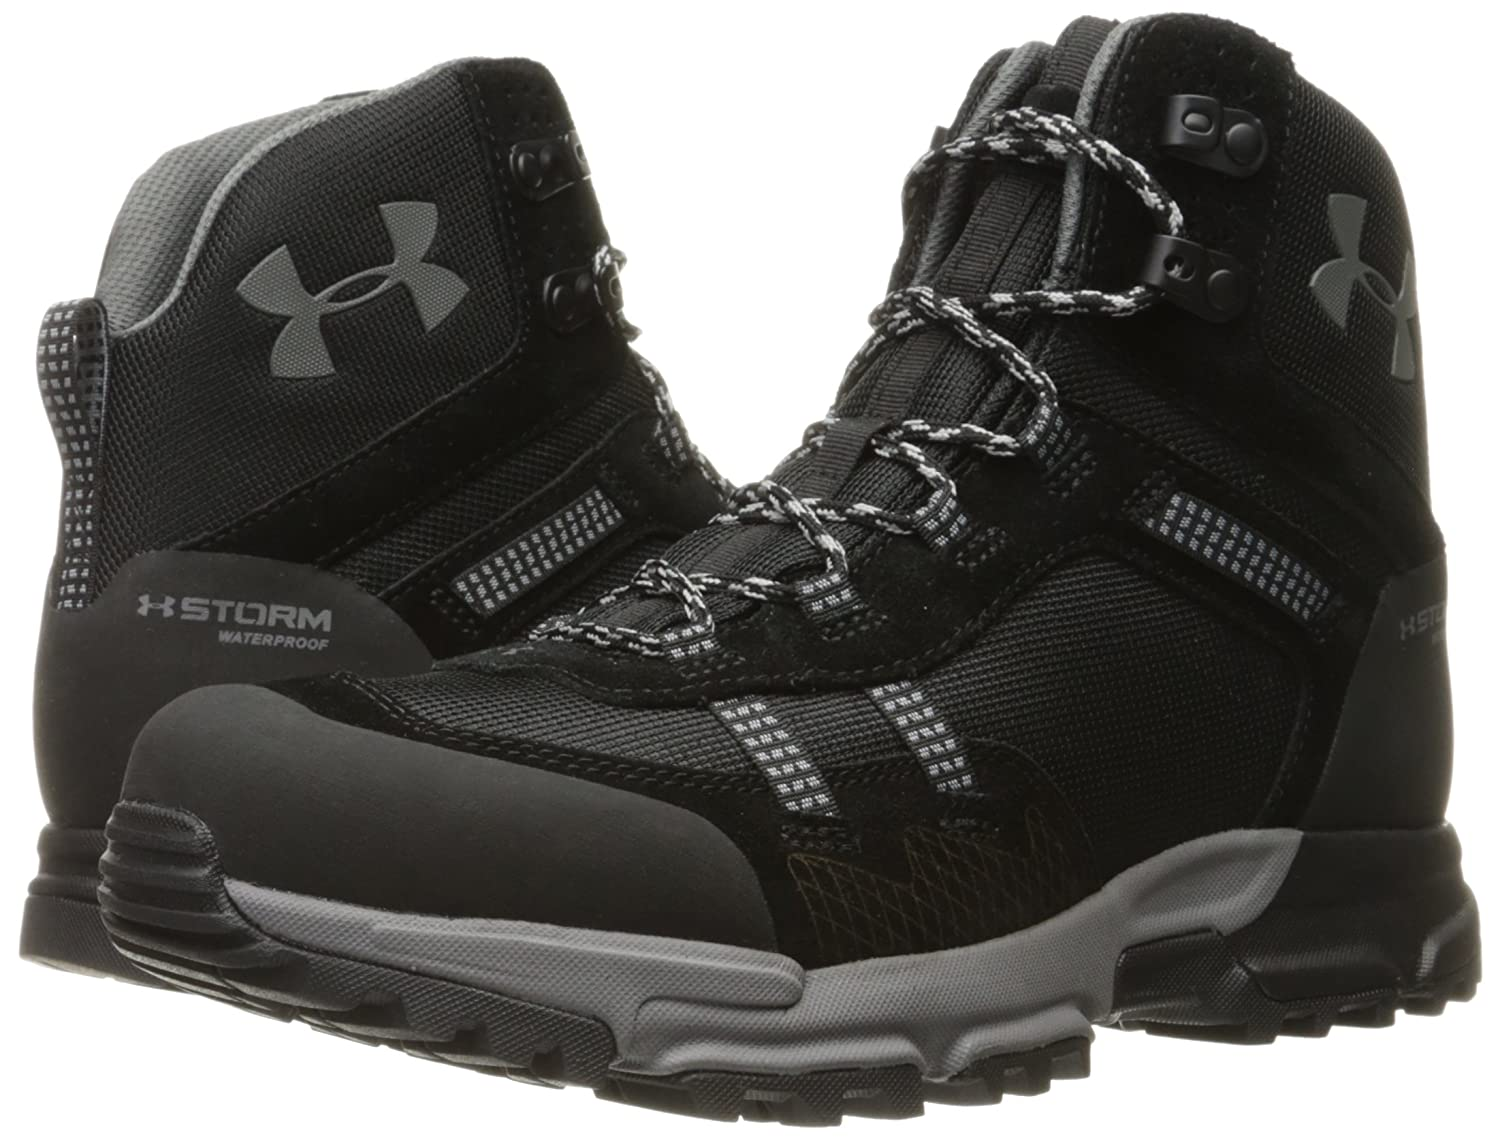 a2415736 Under Armour Men s Post Canyon Mid Waterproof Negro (001) / Negro